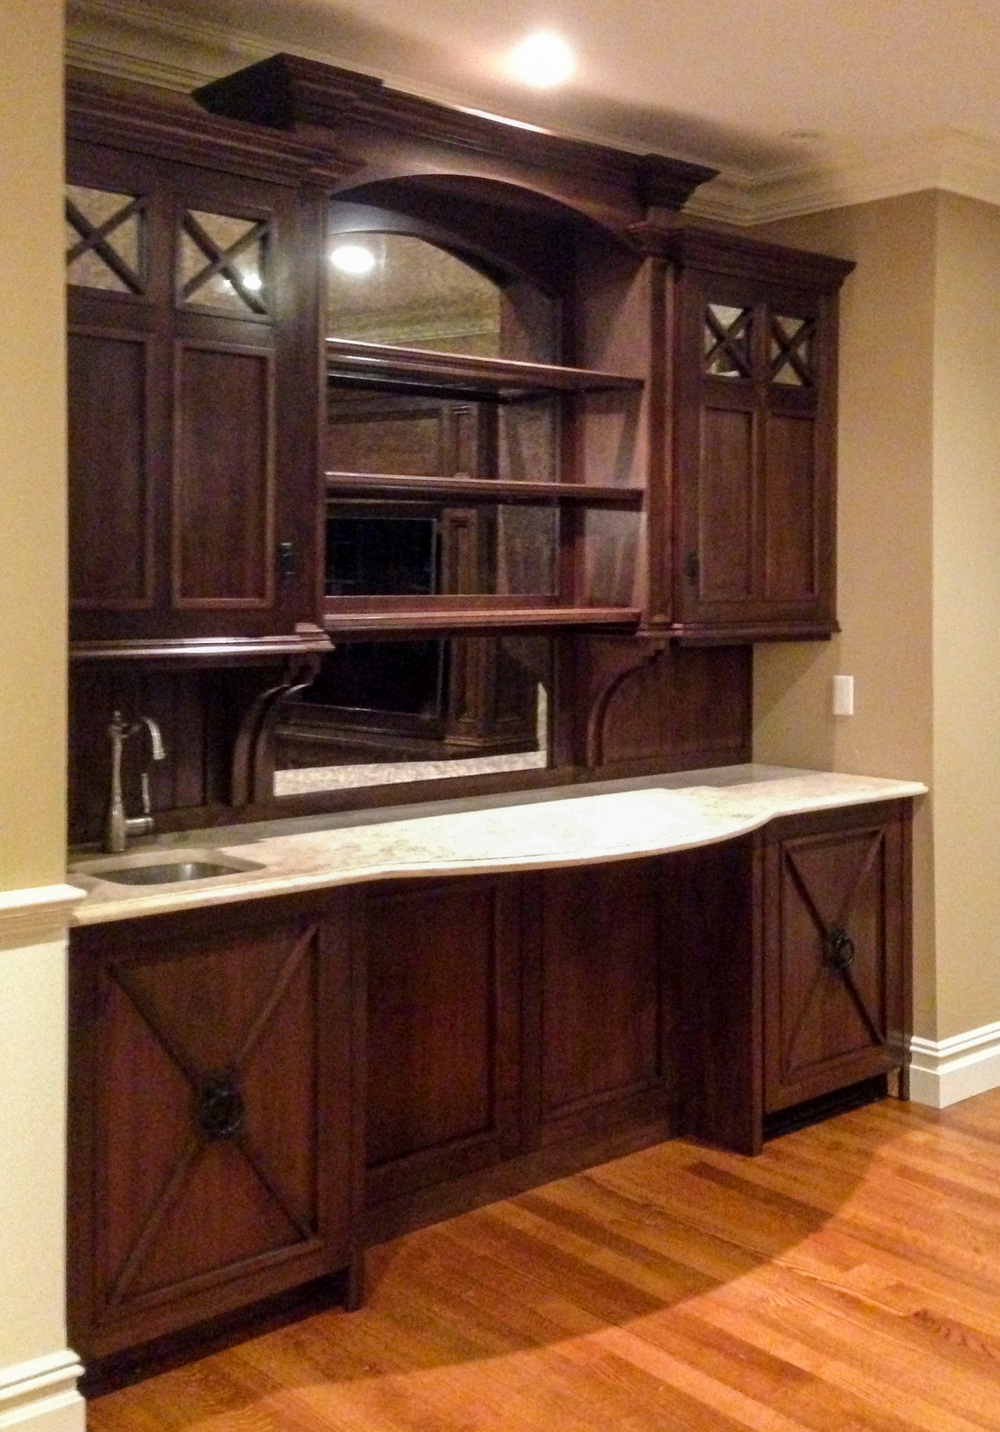 Matching Custom Built-In Bar